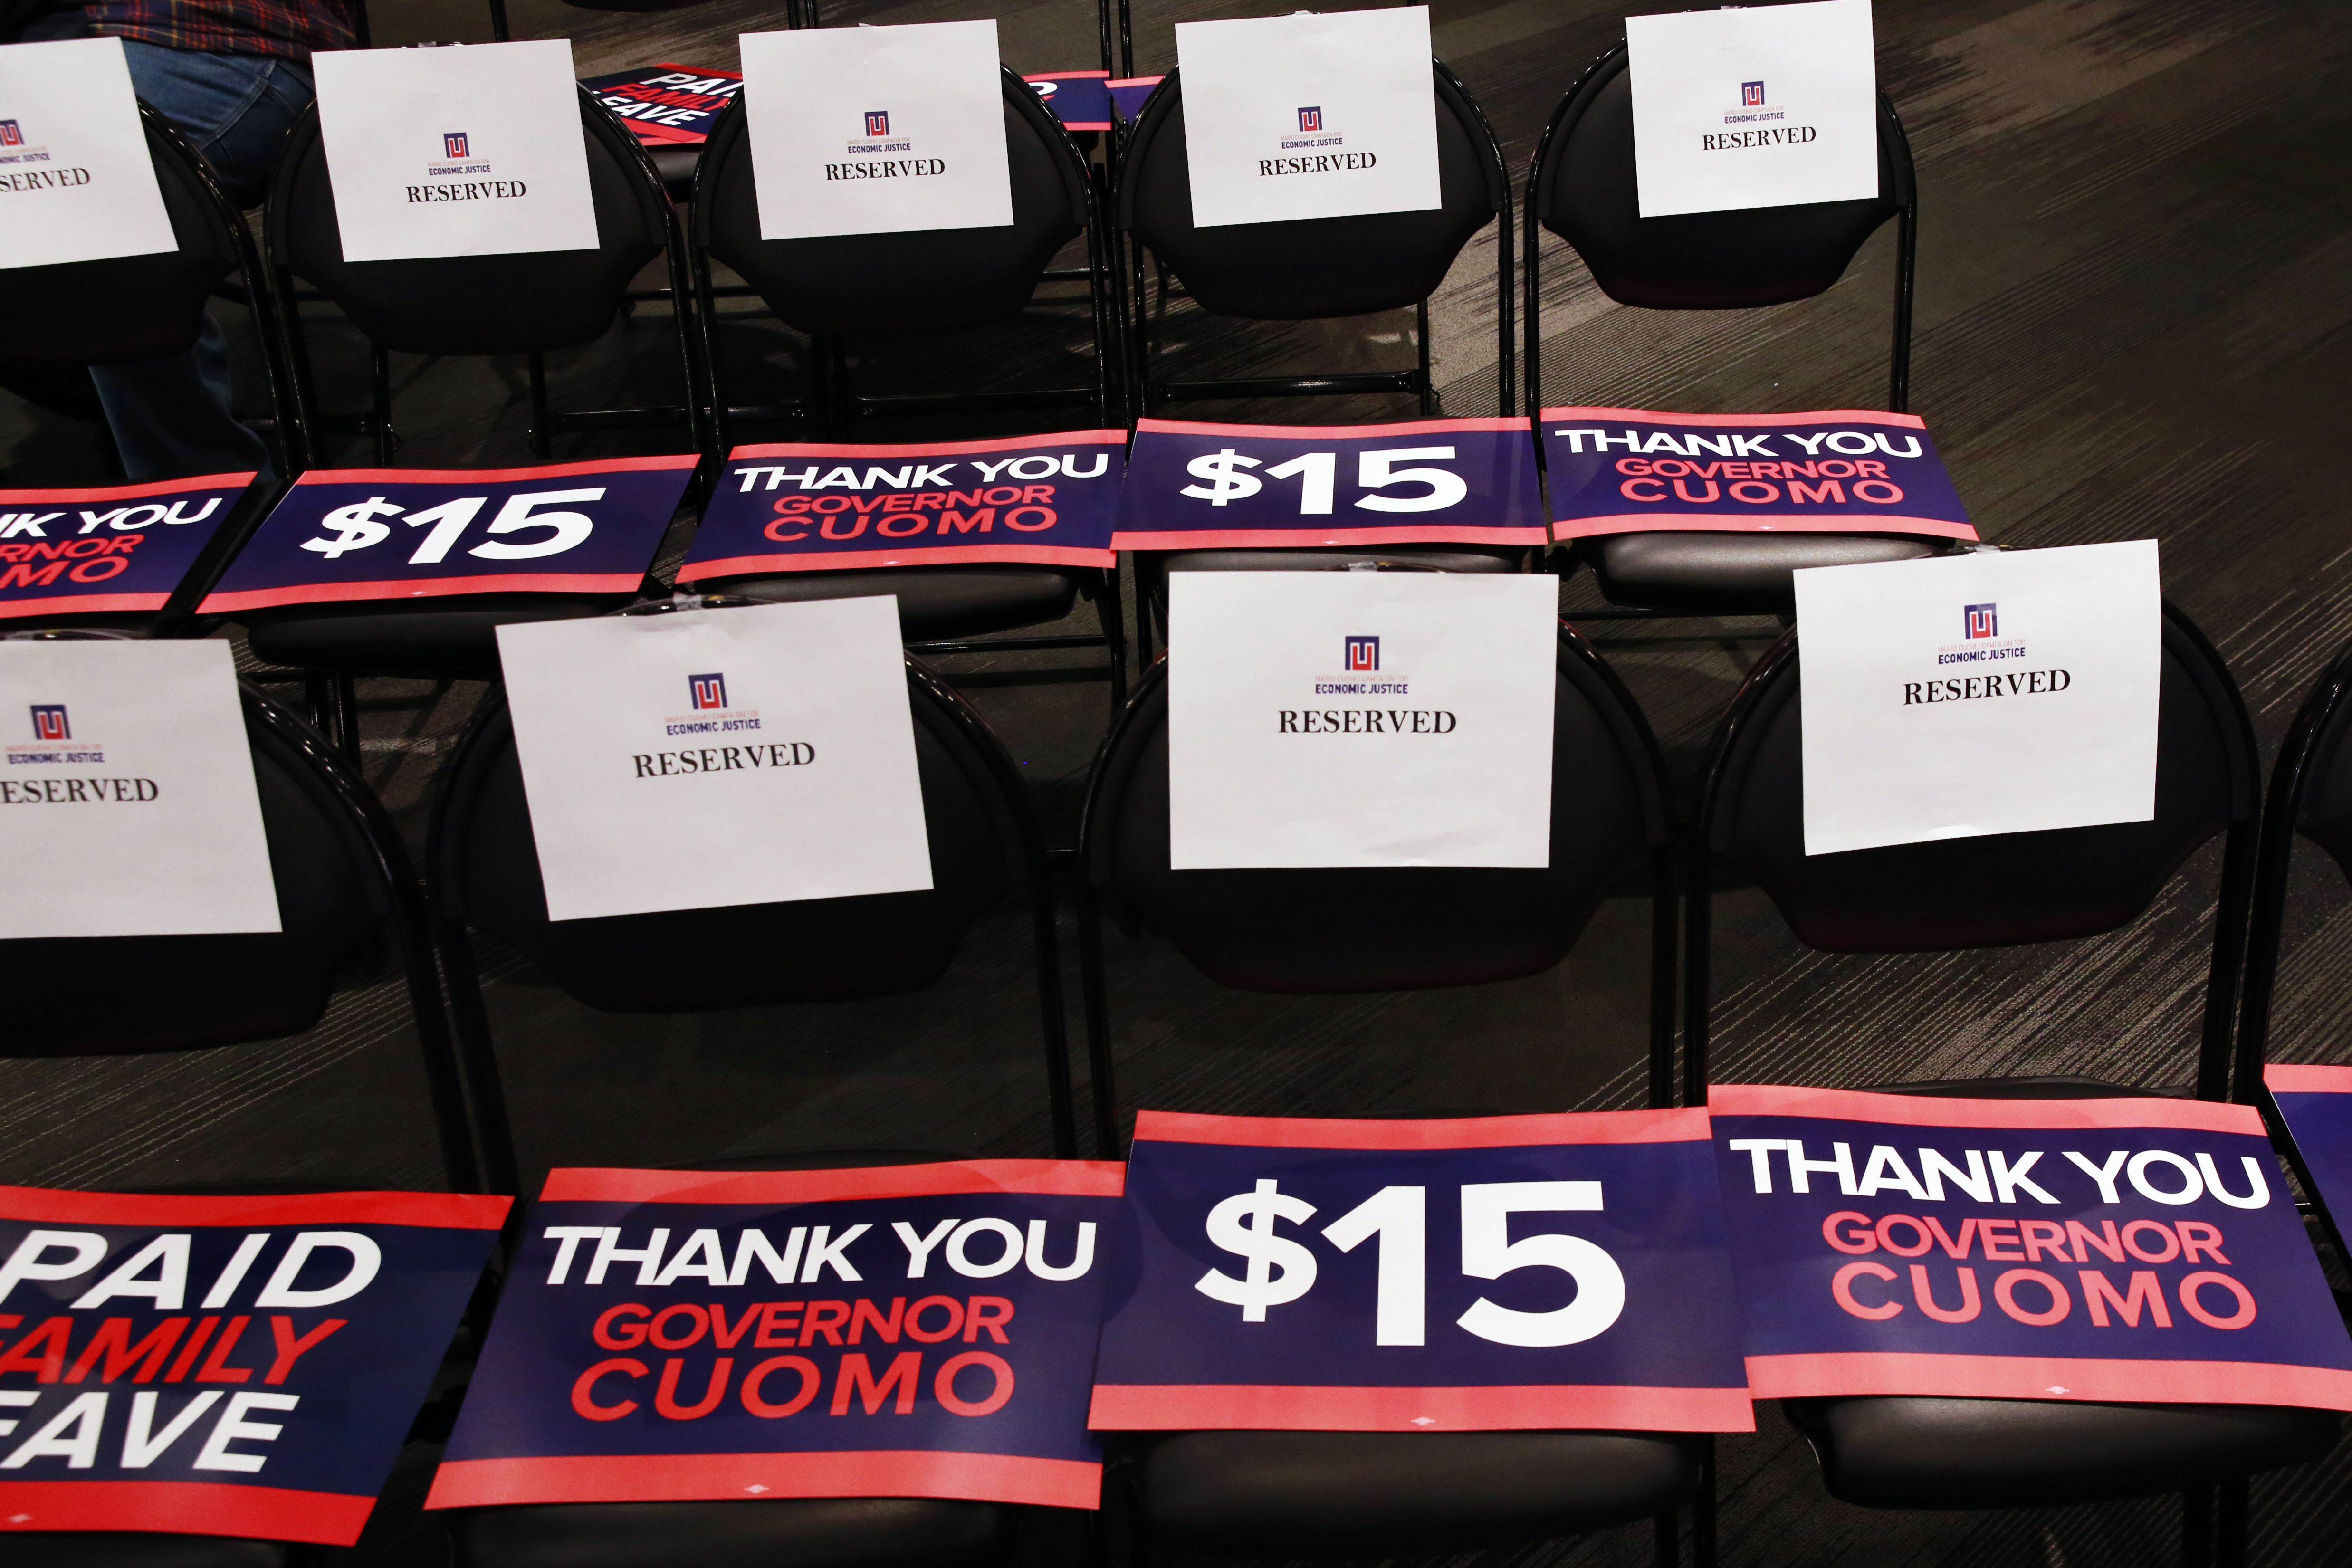 Signs rest on chairs before a rally to celebrate the state of New York passing into law a $15 minimum wage in New York April 4, 2016. REUTERS/Lucas Jackson